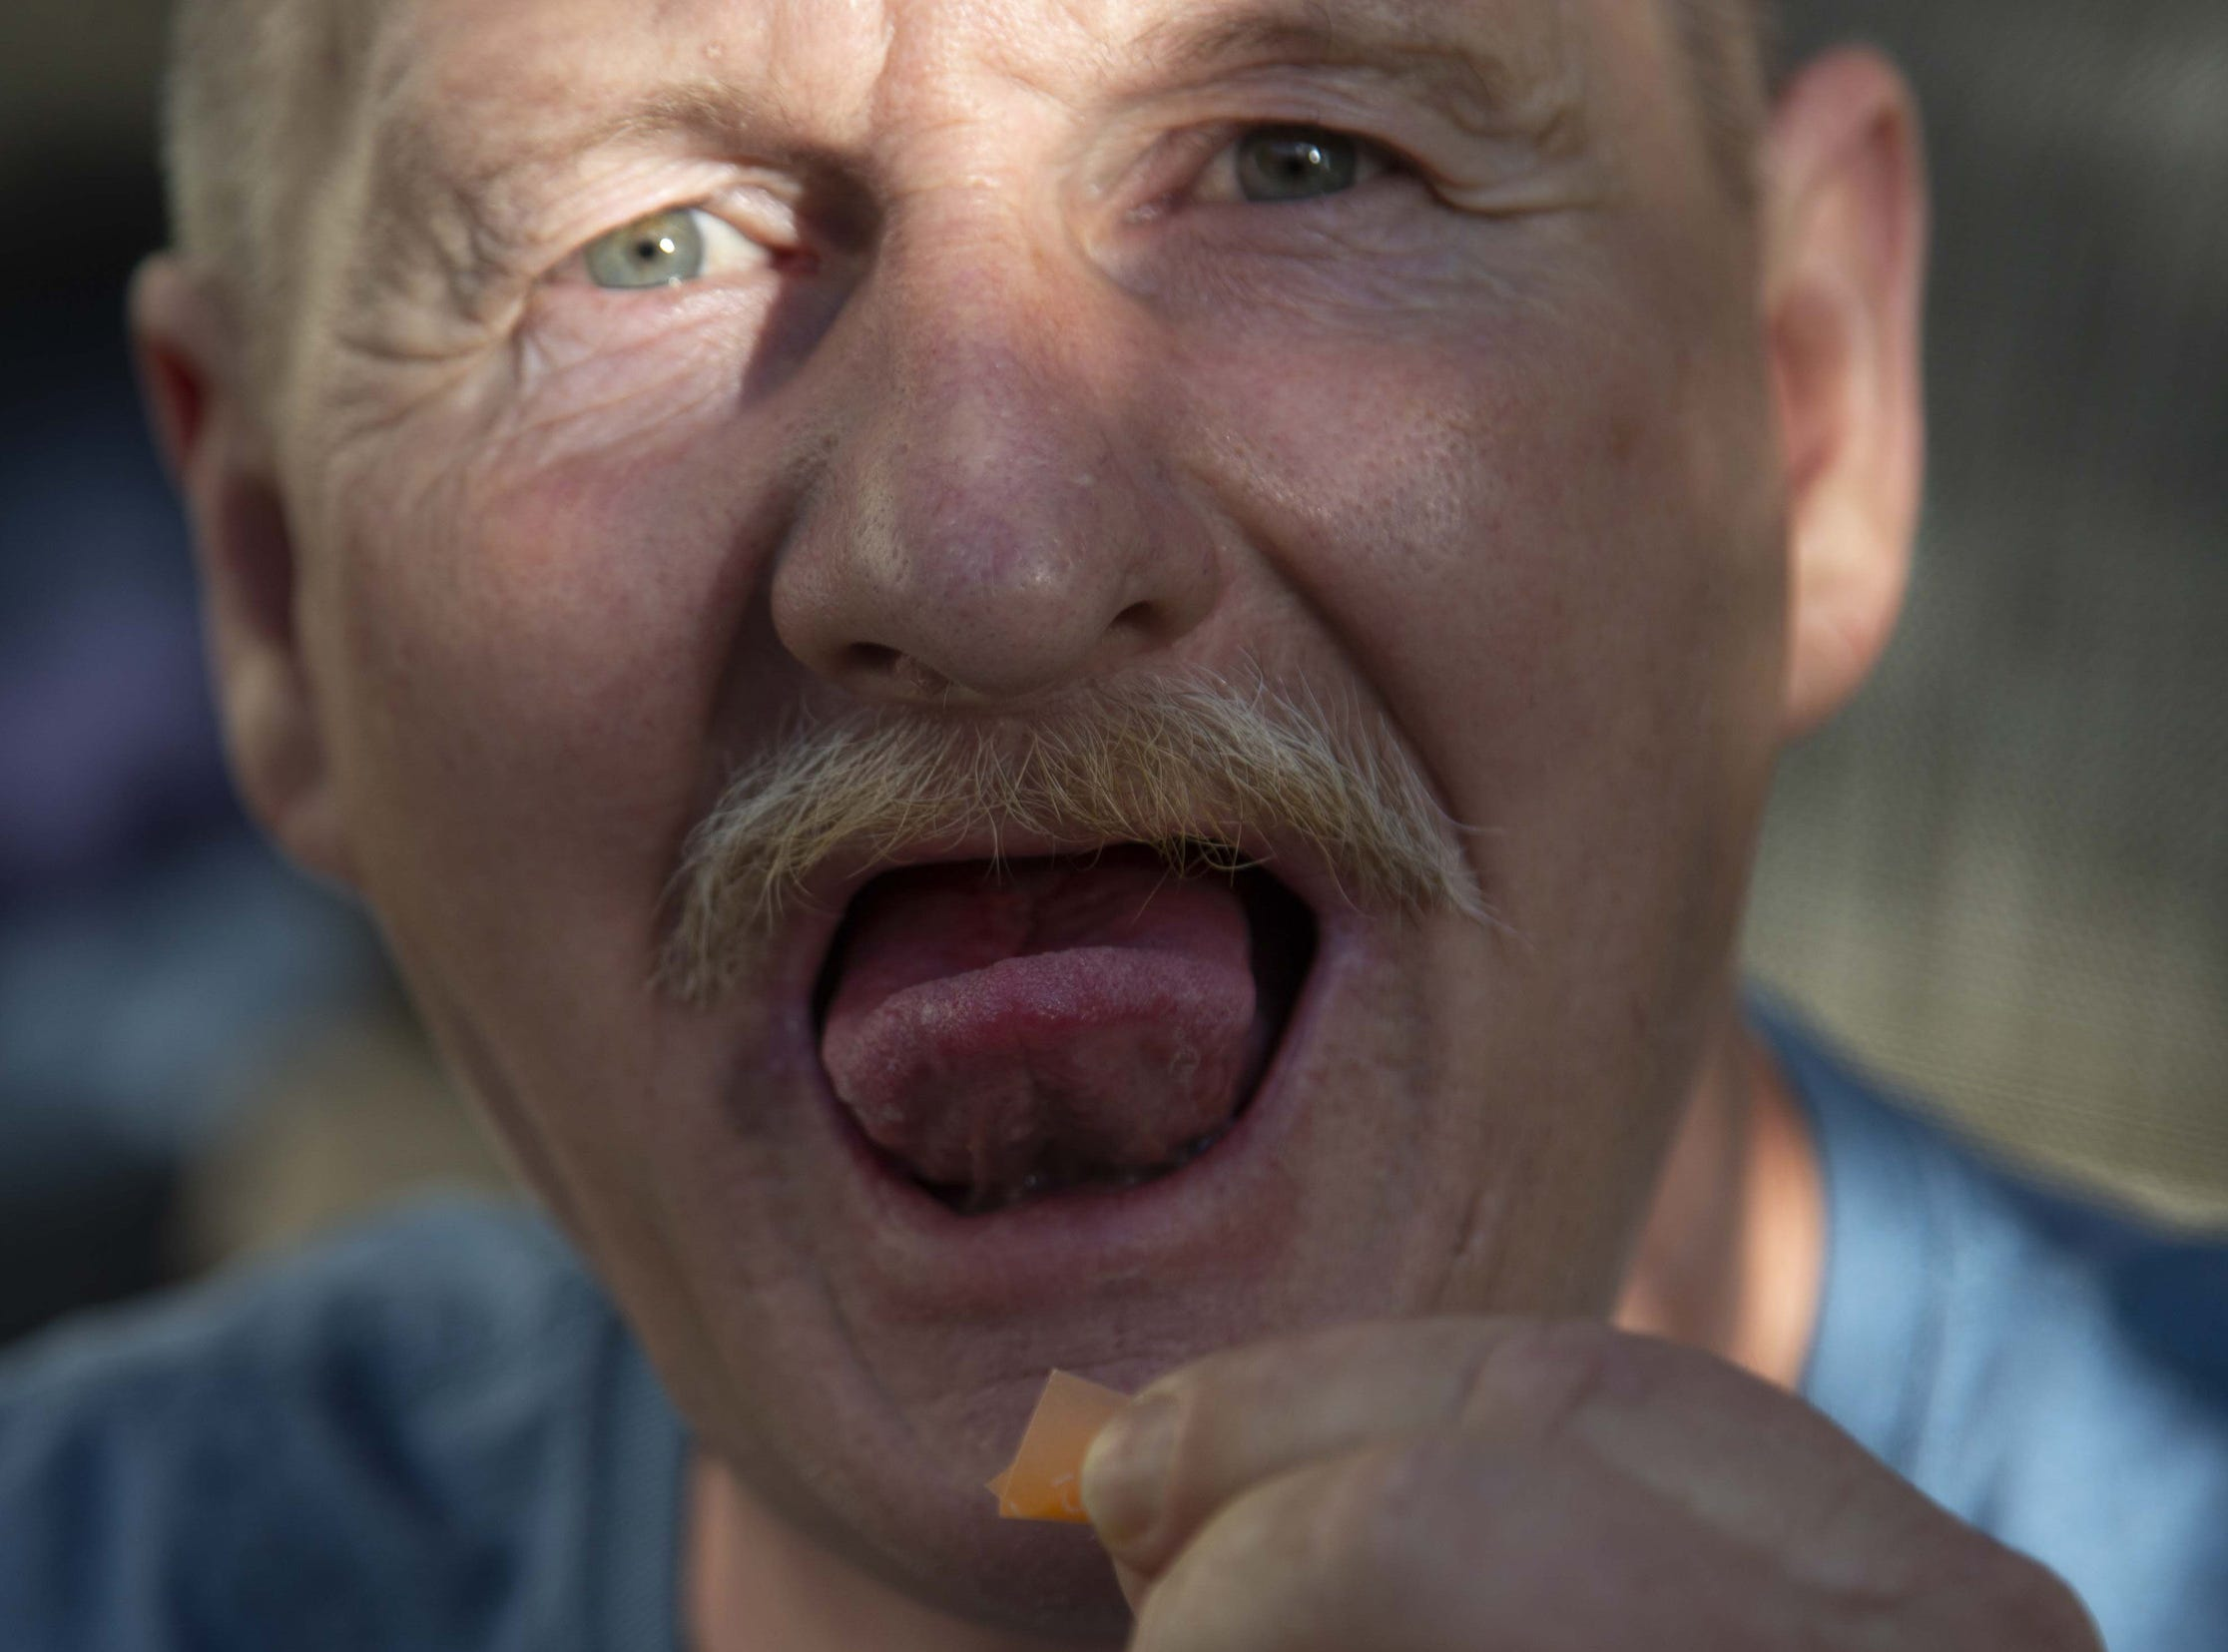 Lollice Reese, 54, takes his Suboxone before going to work. He said he is having success giving up heroin with medication-assisted treatment.